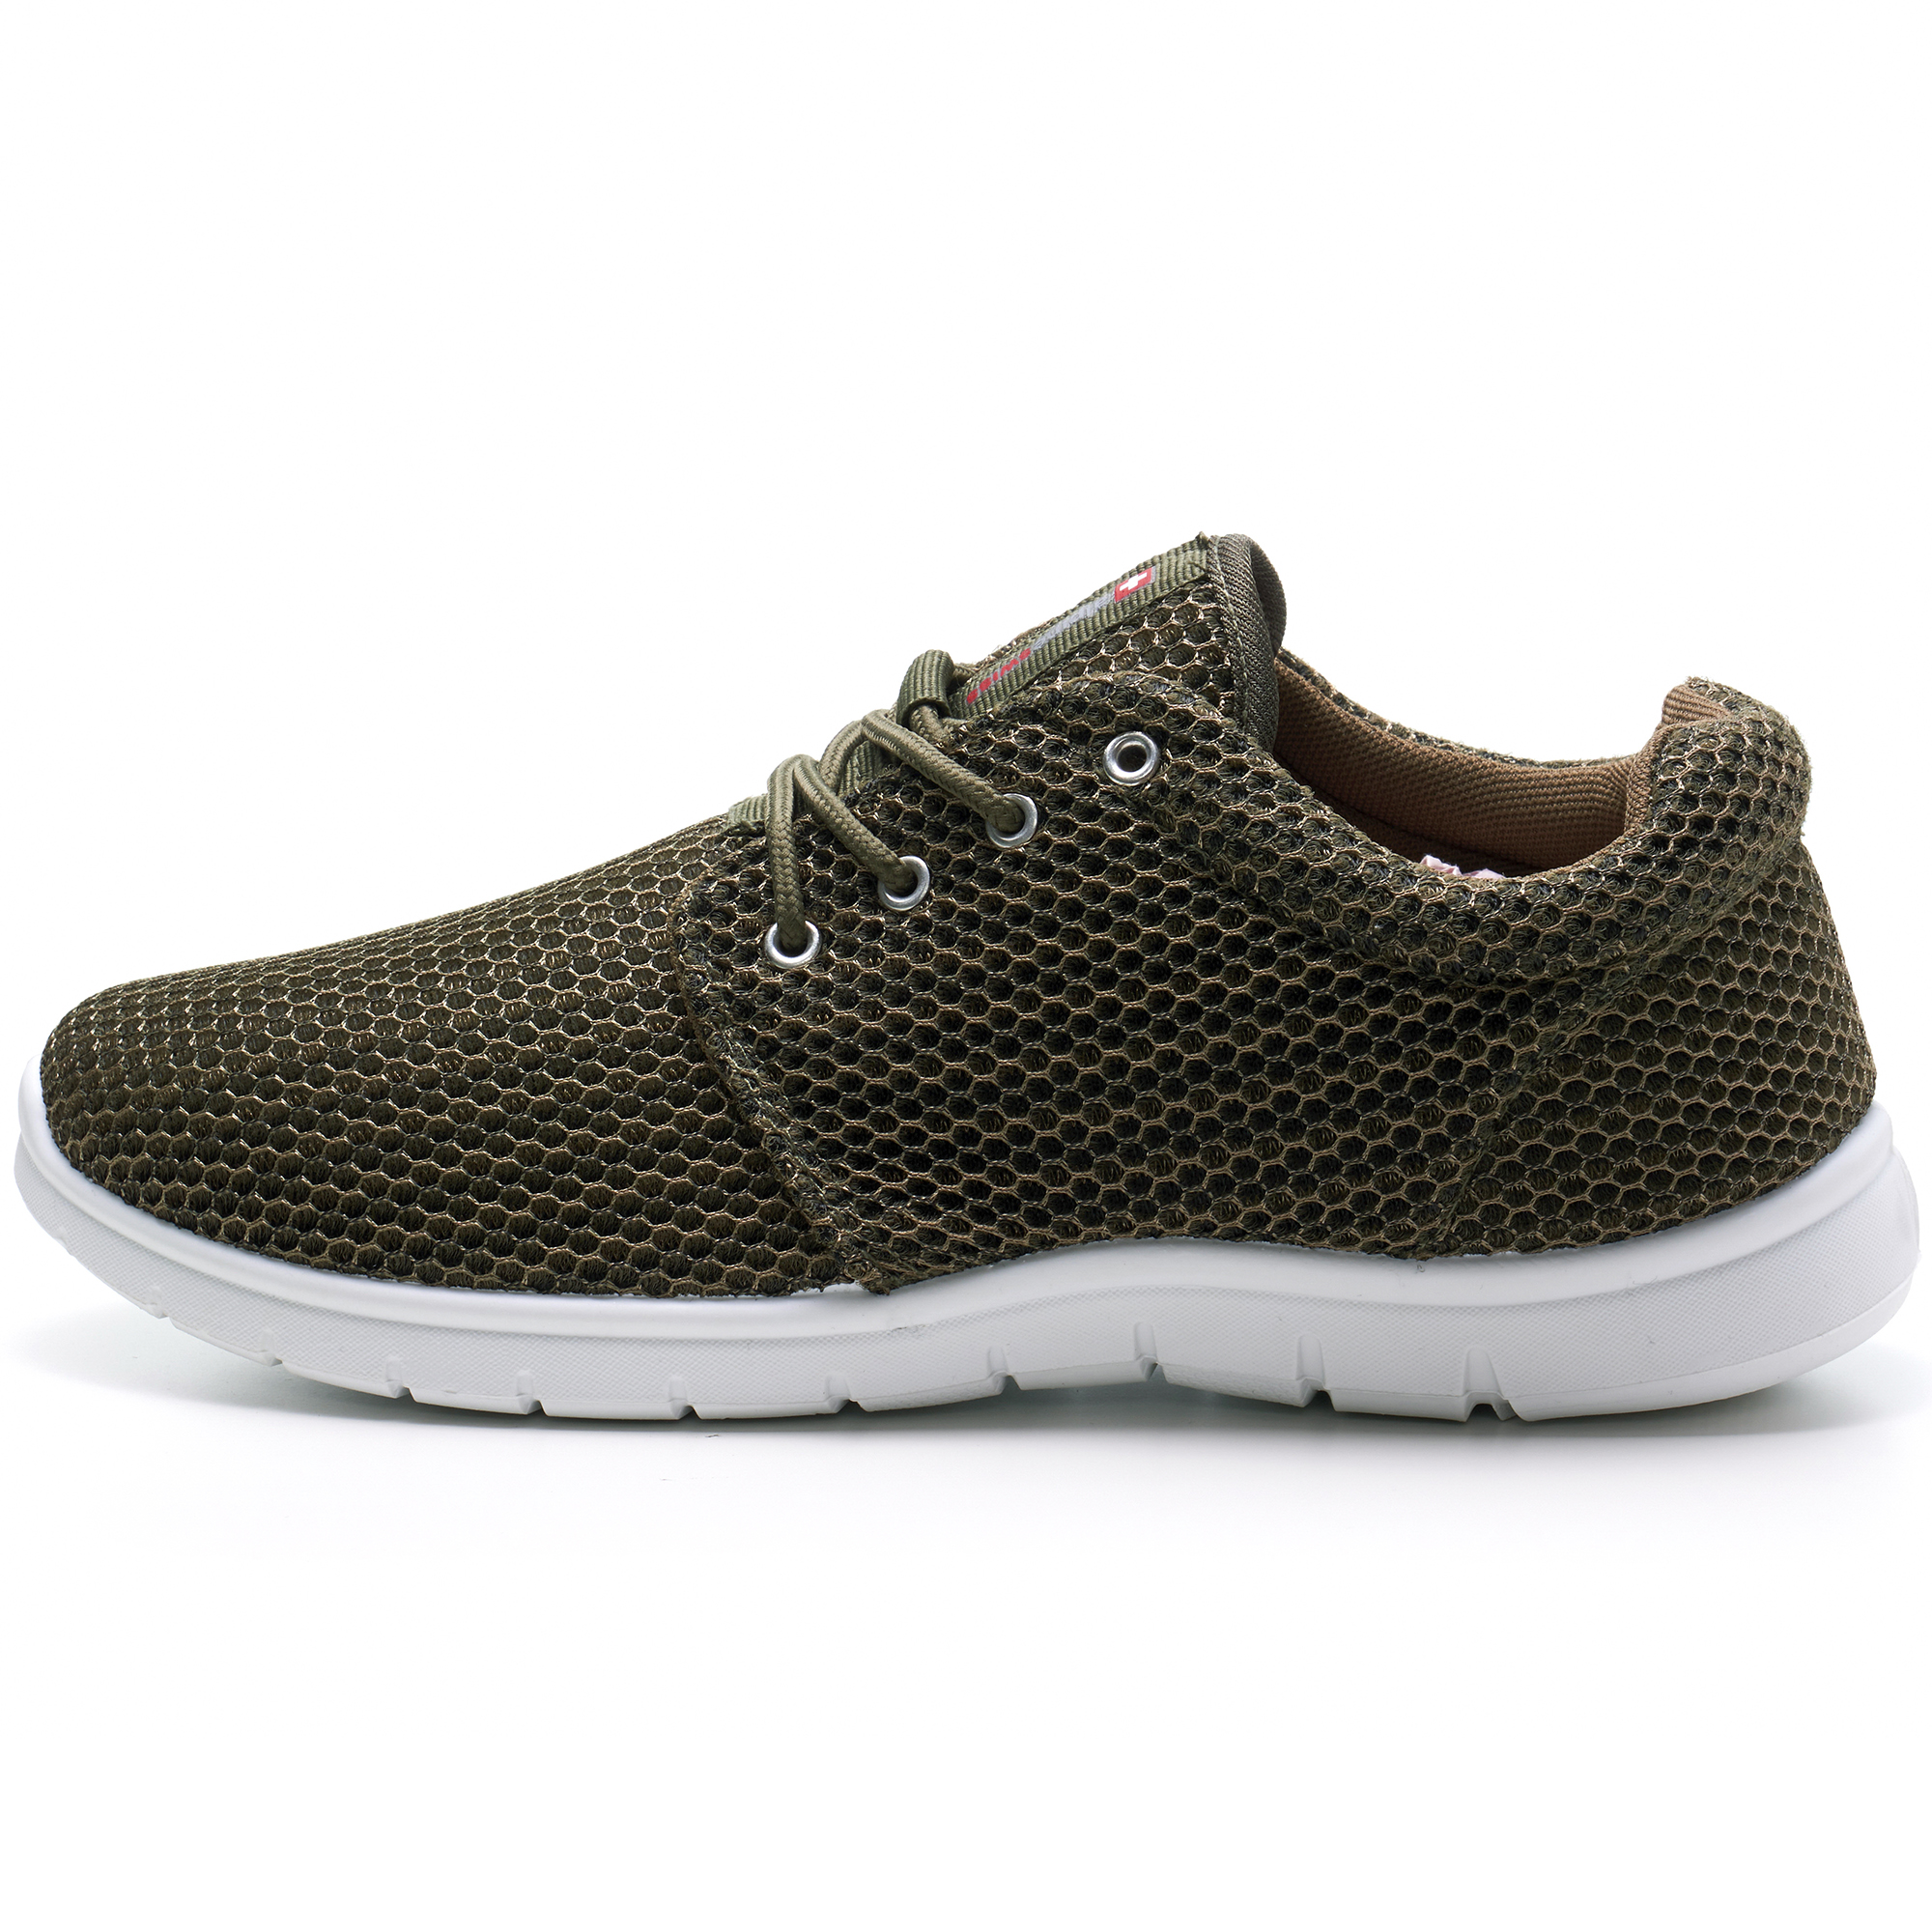 Alpine-Swiss-Kilian-Mesh-Sneakers-Casual-Shoes-Mens-amp-Womens-Lightweight-Trainer thumbnail 49